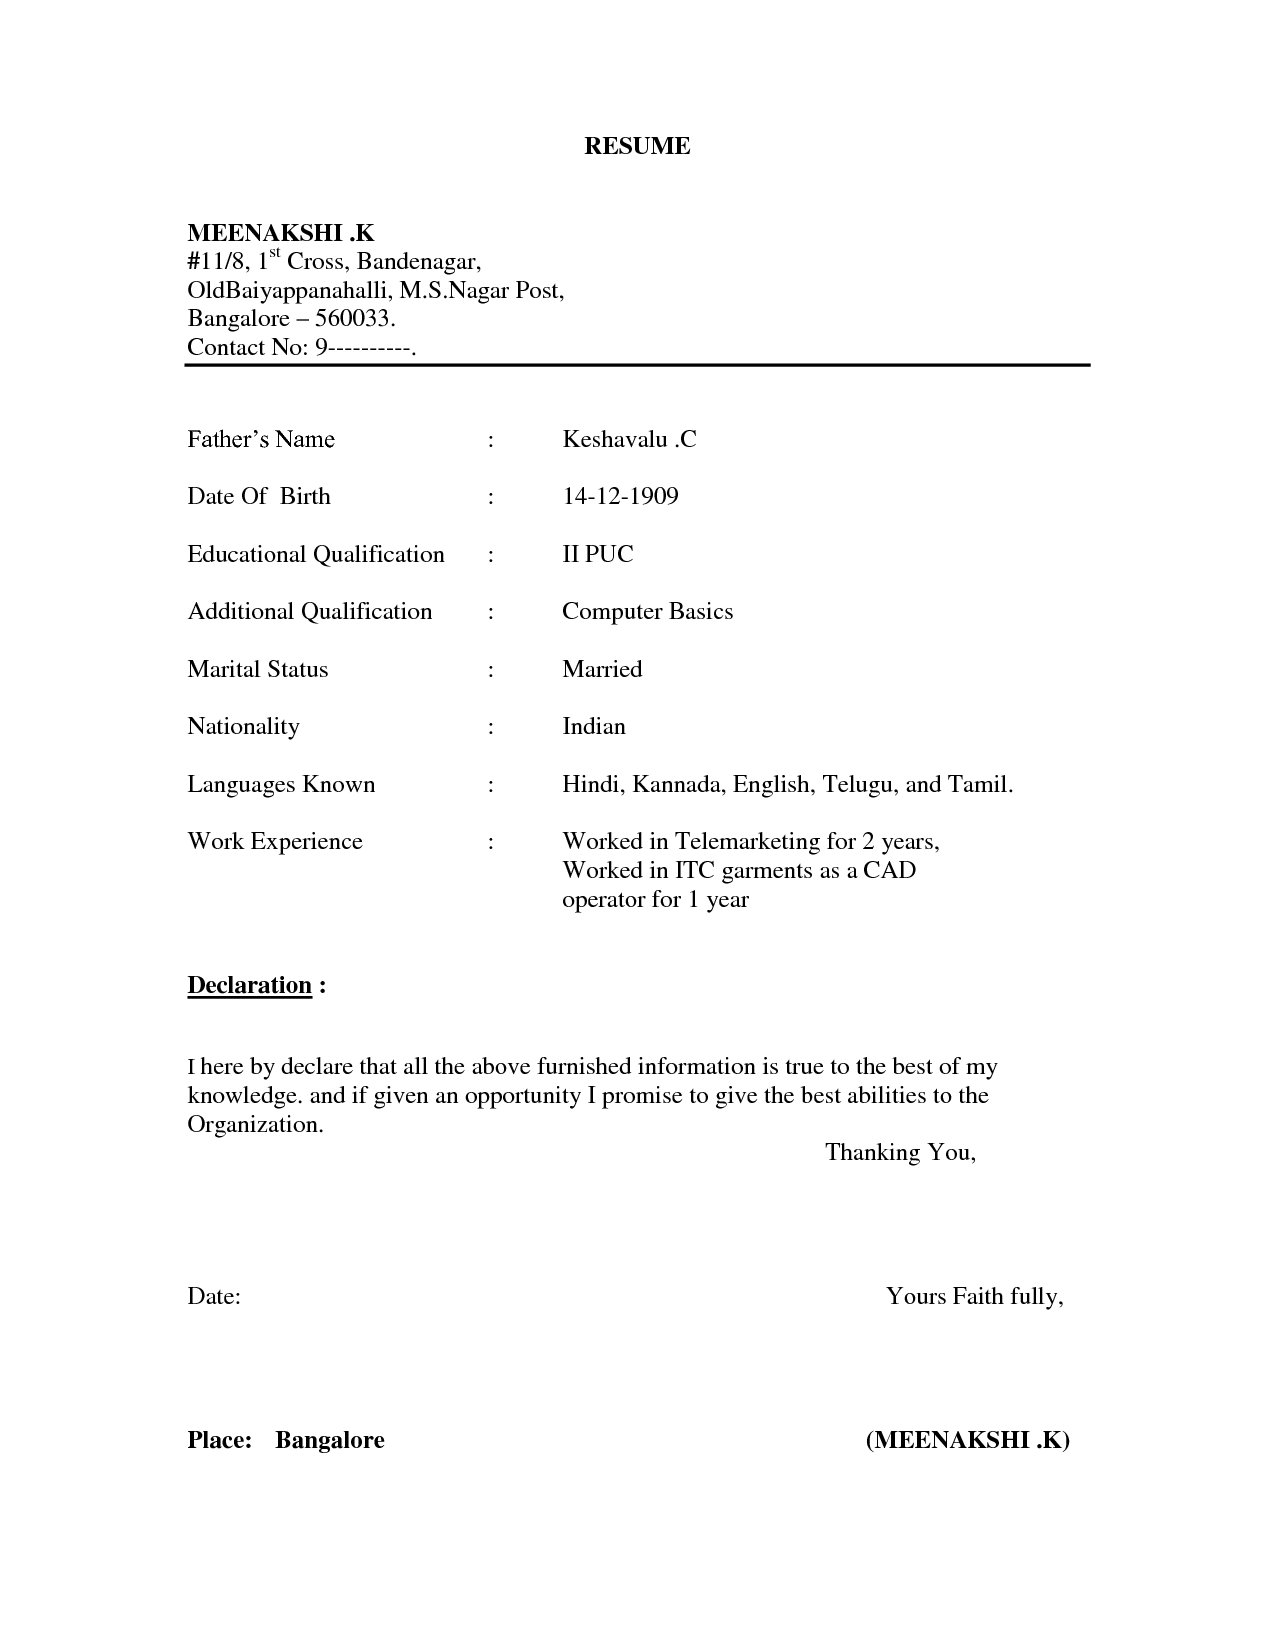 resume format doc file download resume format doc file download  resume format u2026